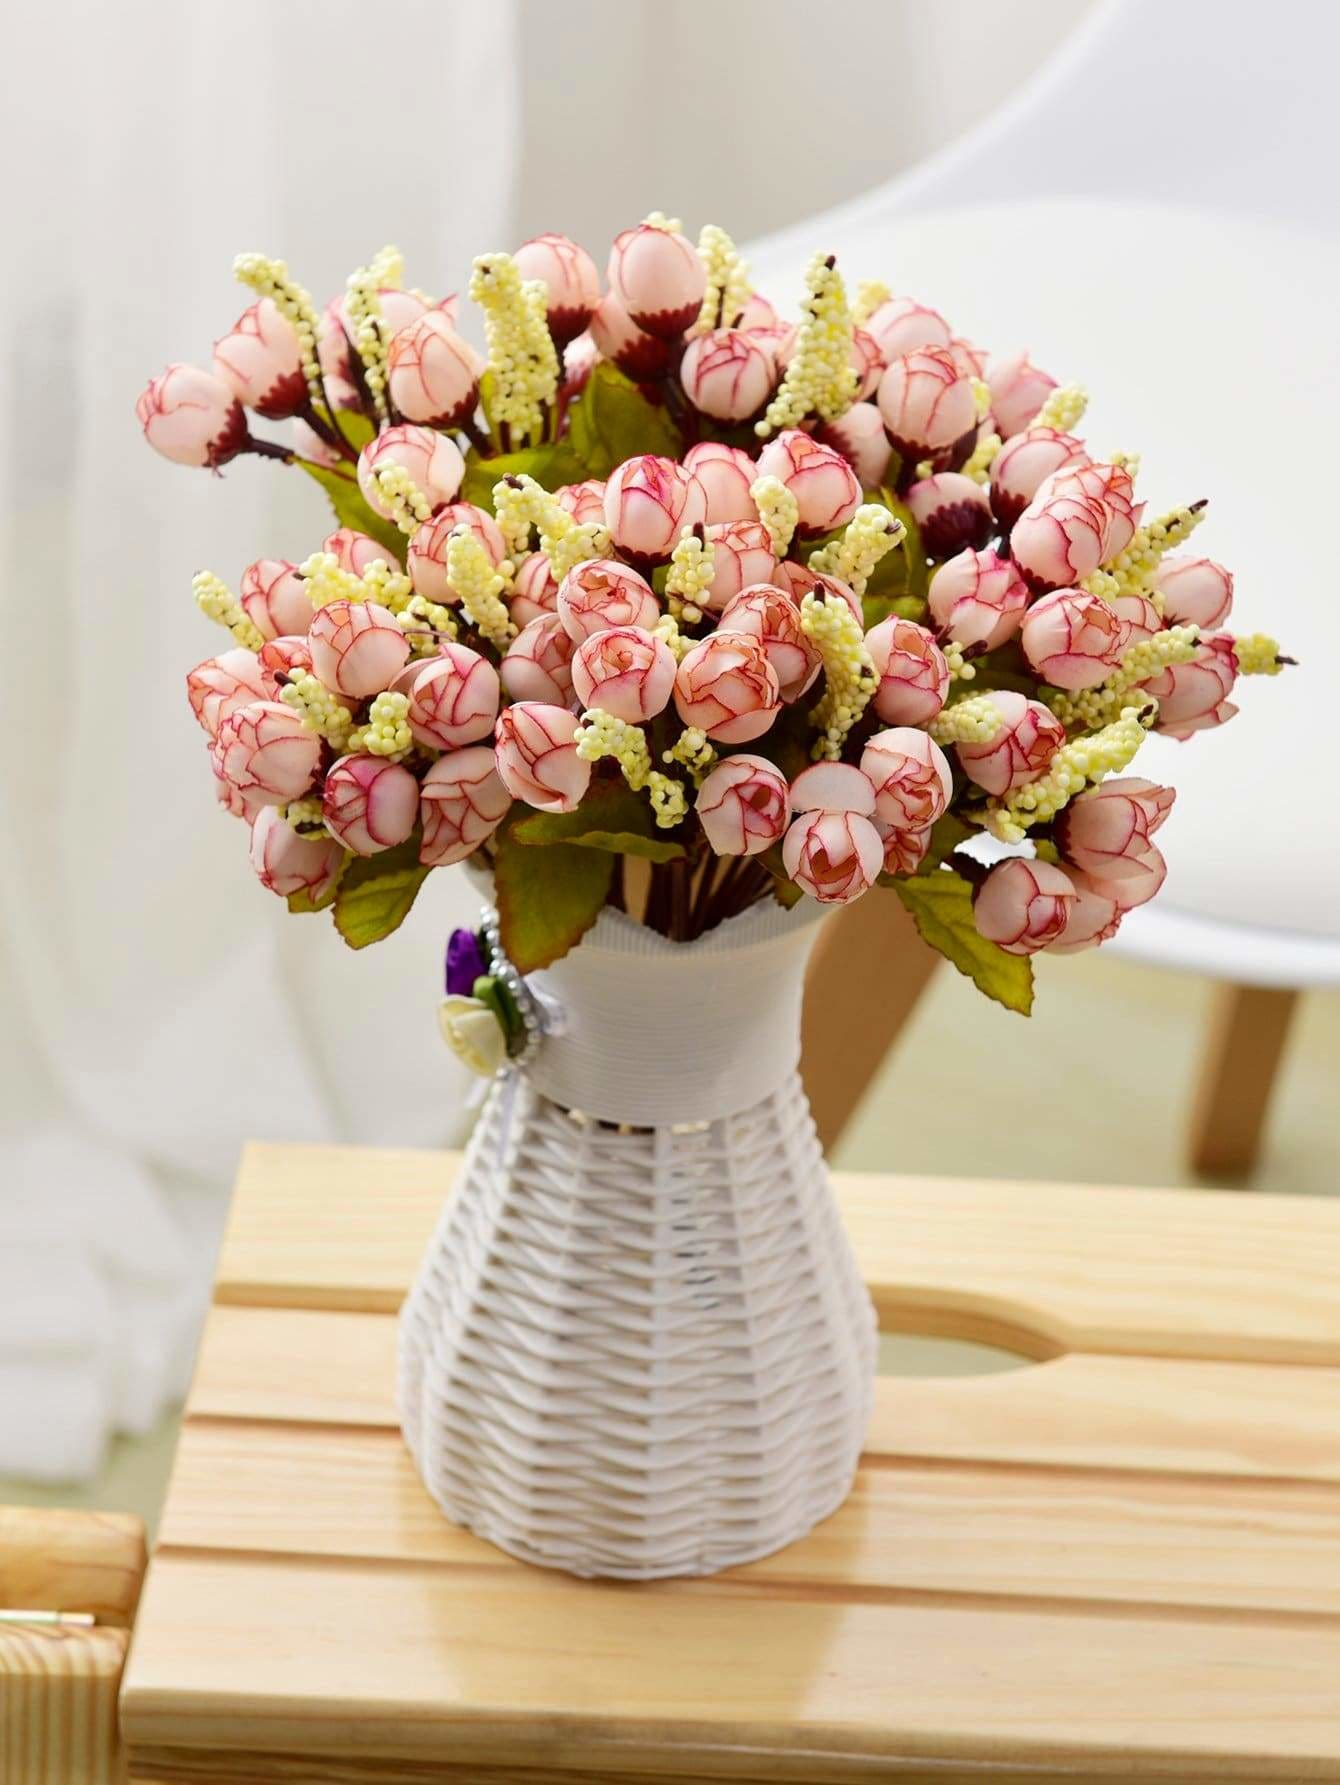 15pcs Rose Bud Artificial Bouquet - Vases & Artificial Flowers